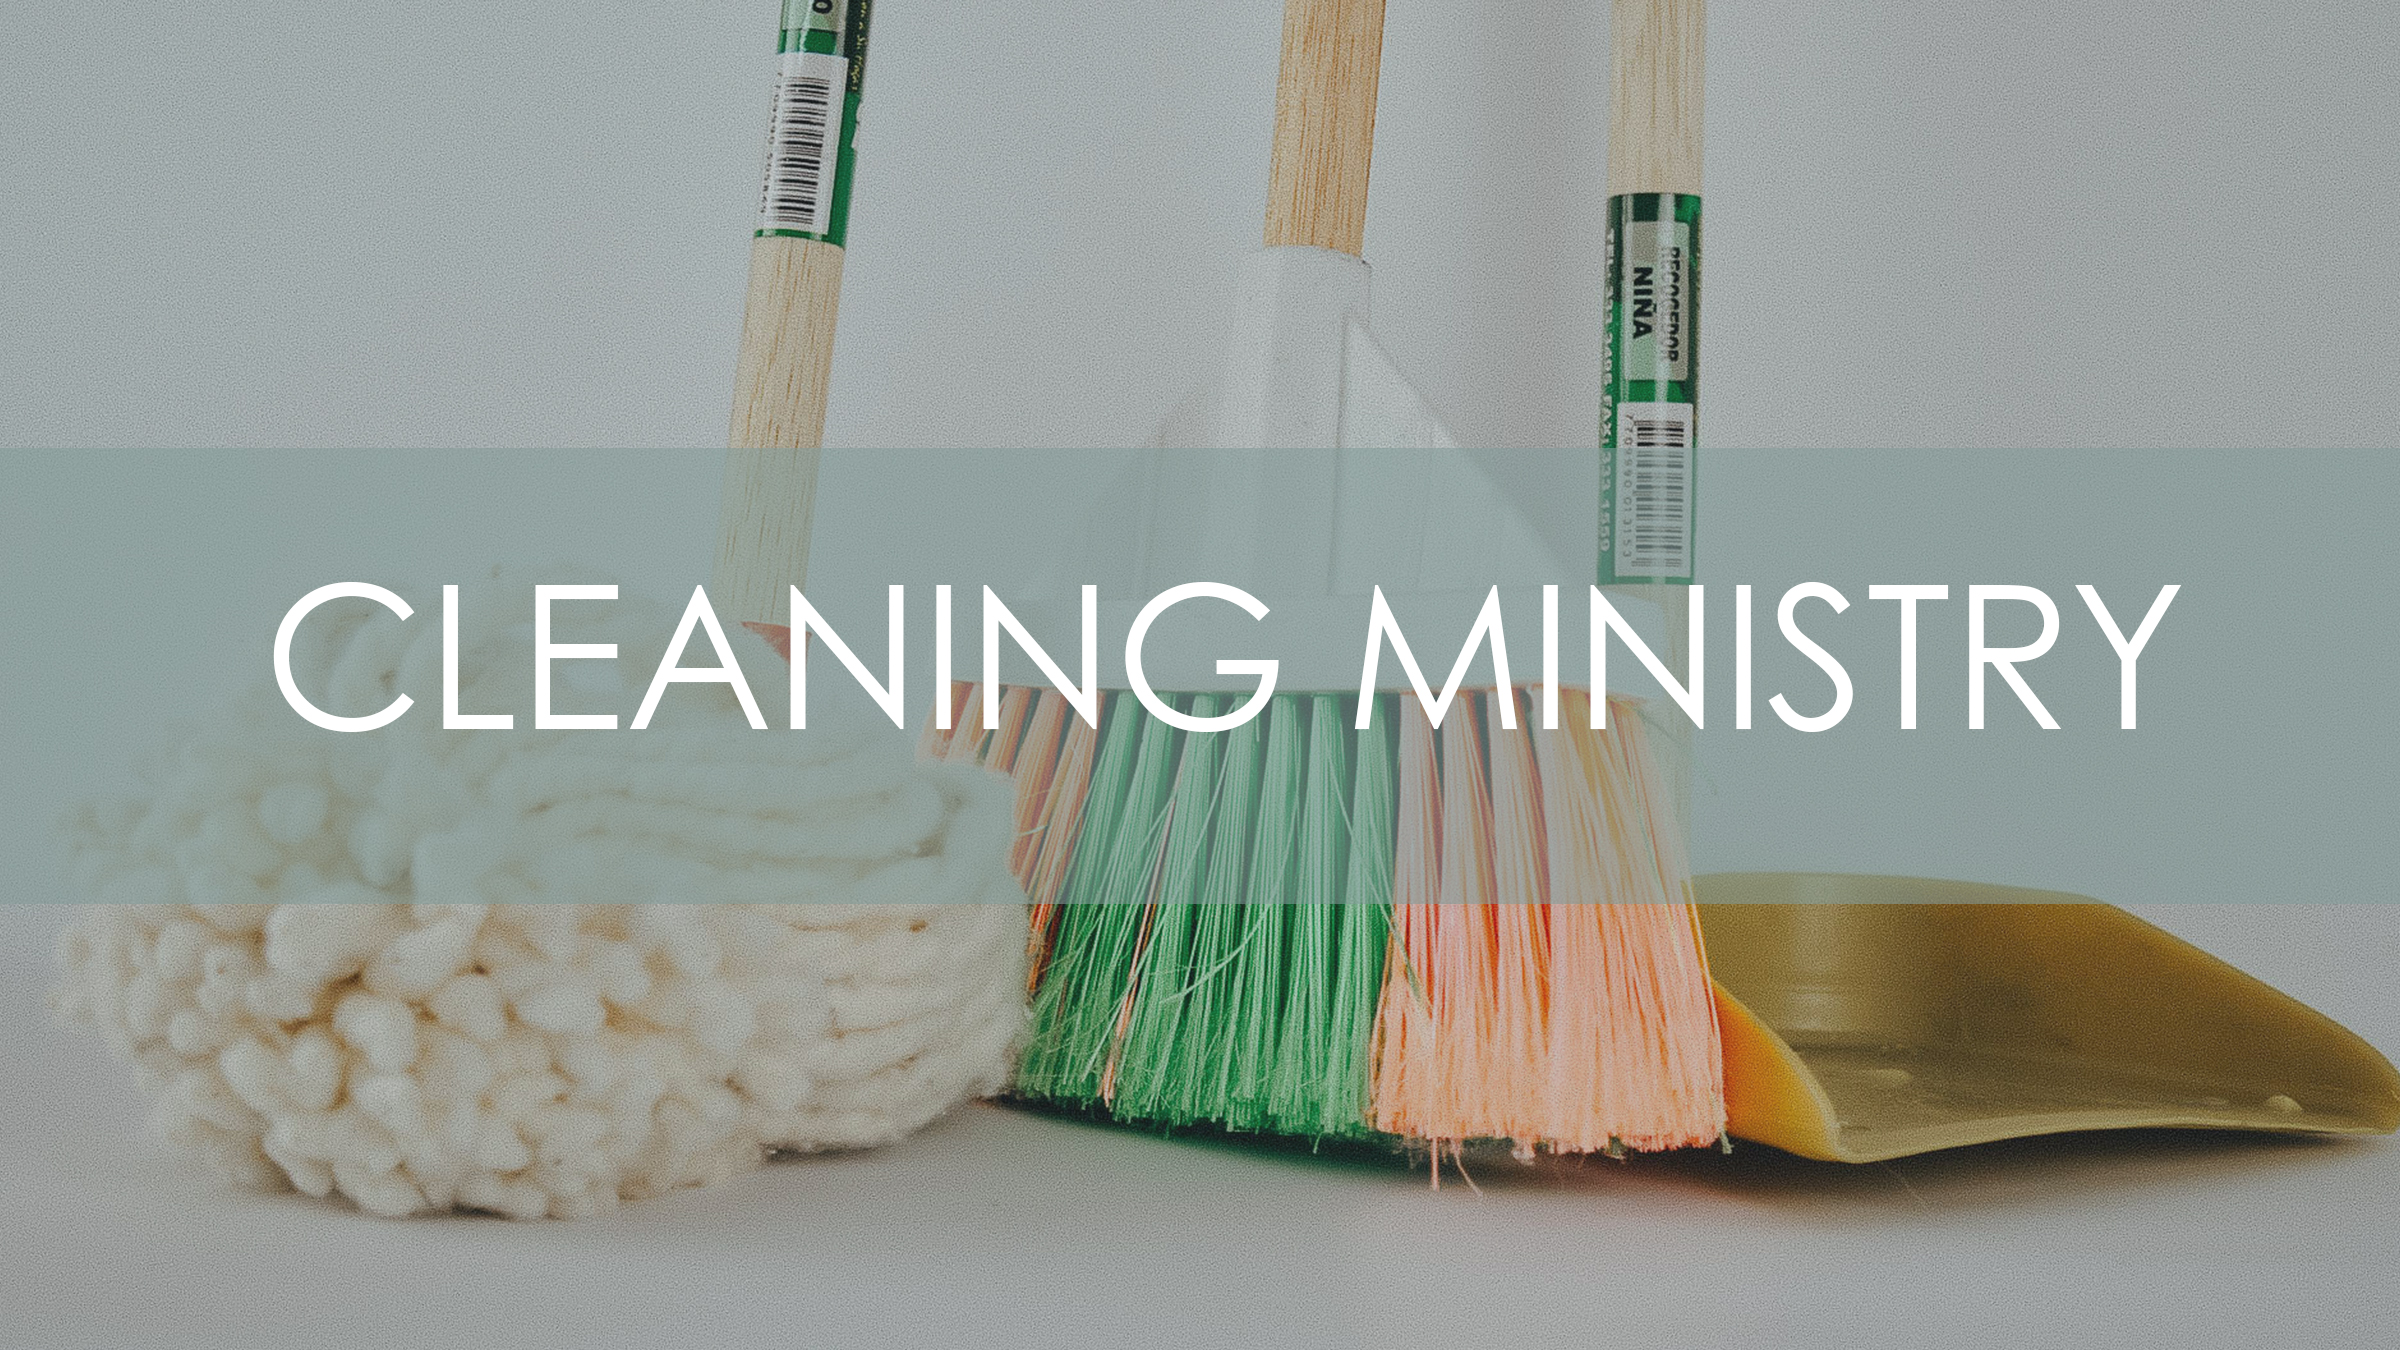 Cleaning-ministry.jpg